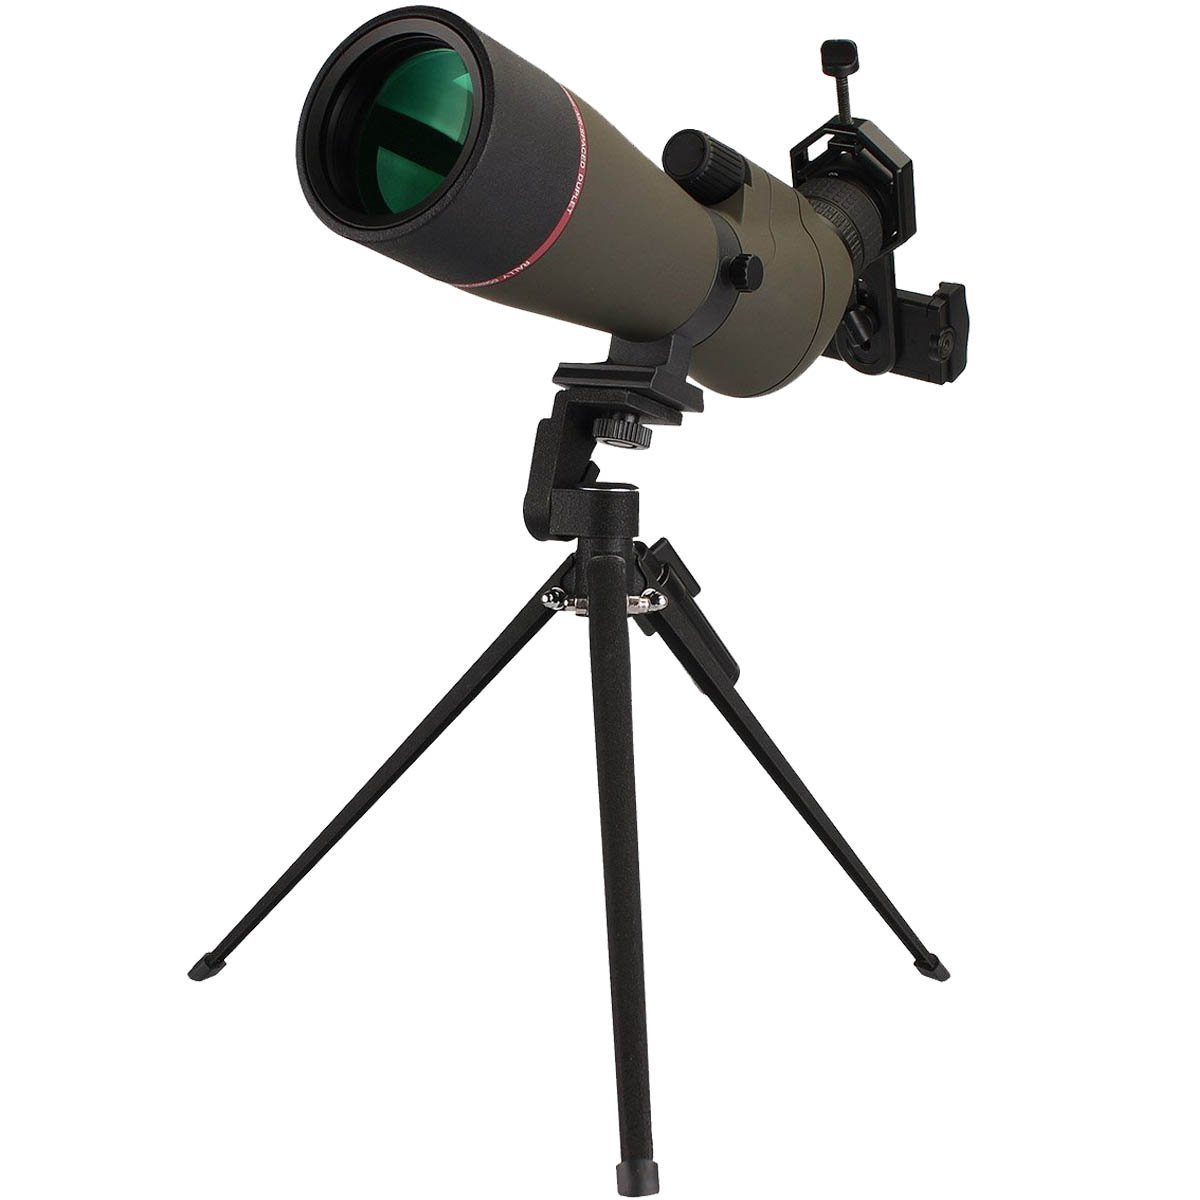 SVBONY 20-60x80mm Outdoor Shooting Hunting Spotting Scopes Bak4 Bird Watching Scope Telescope Magnification FMC Green Film Objective Lens with Tripod by SVBONY